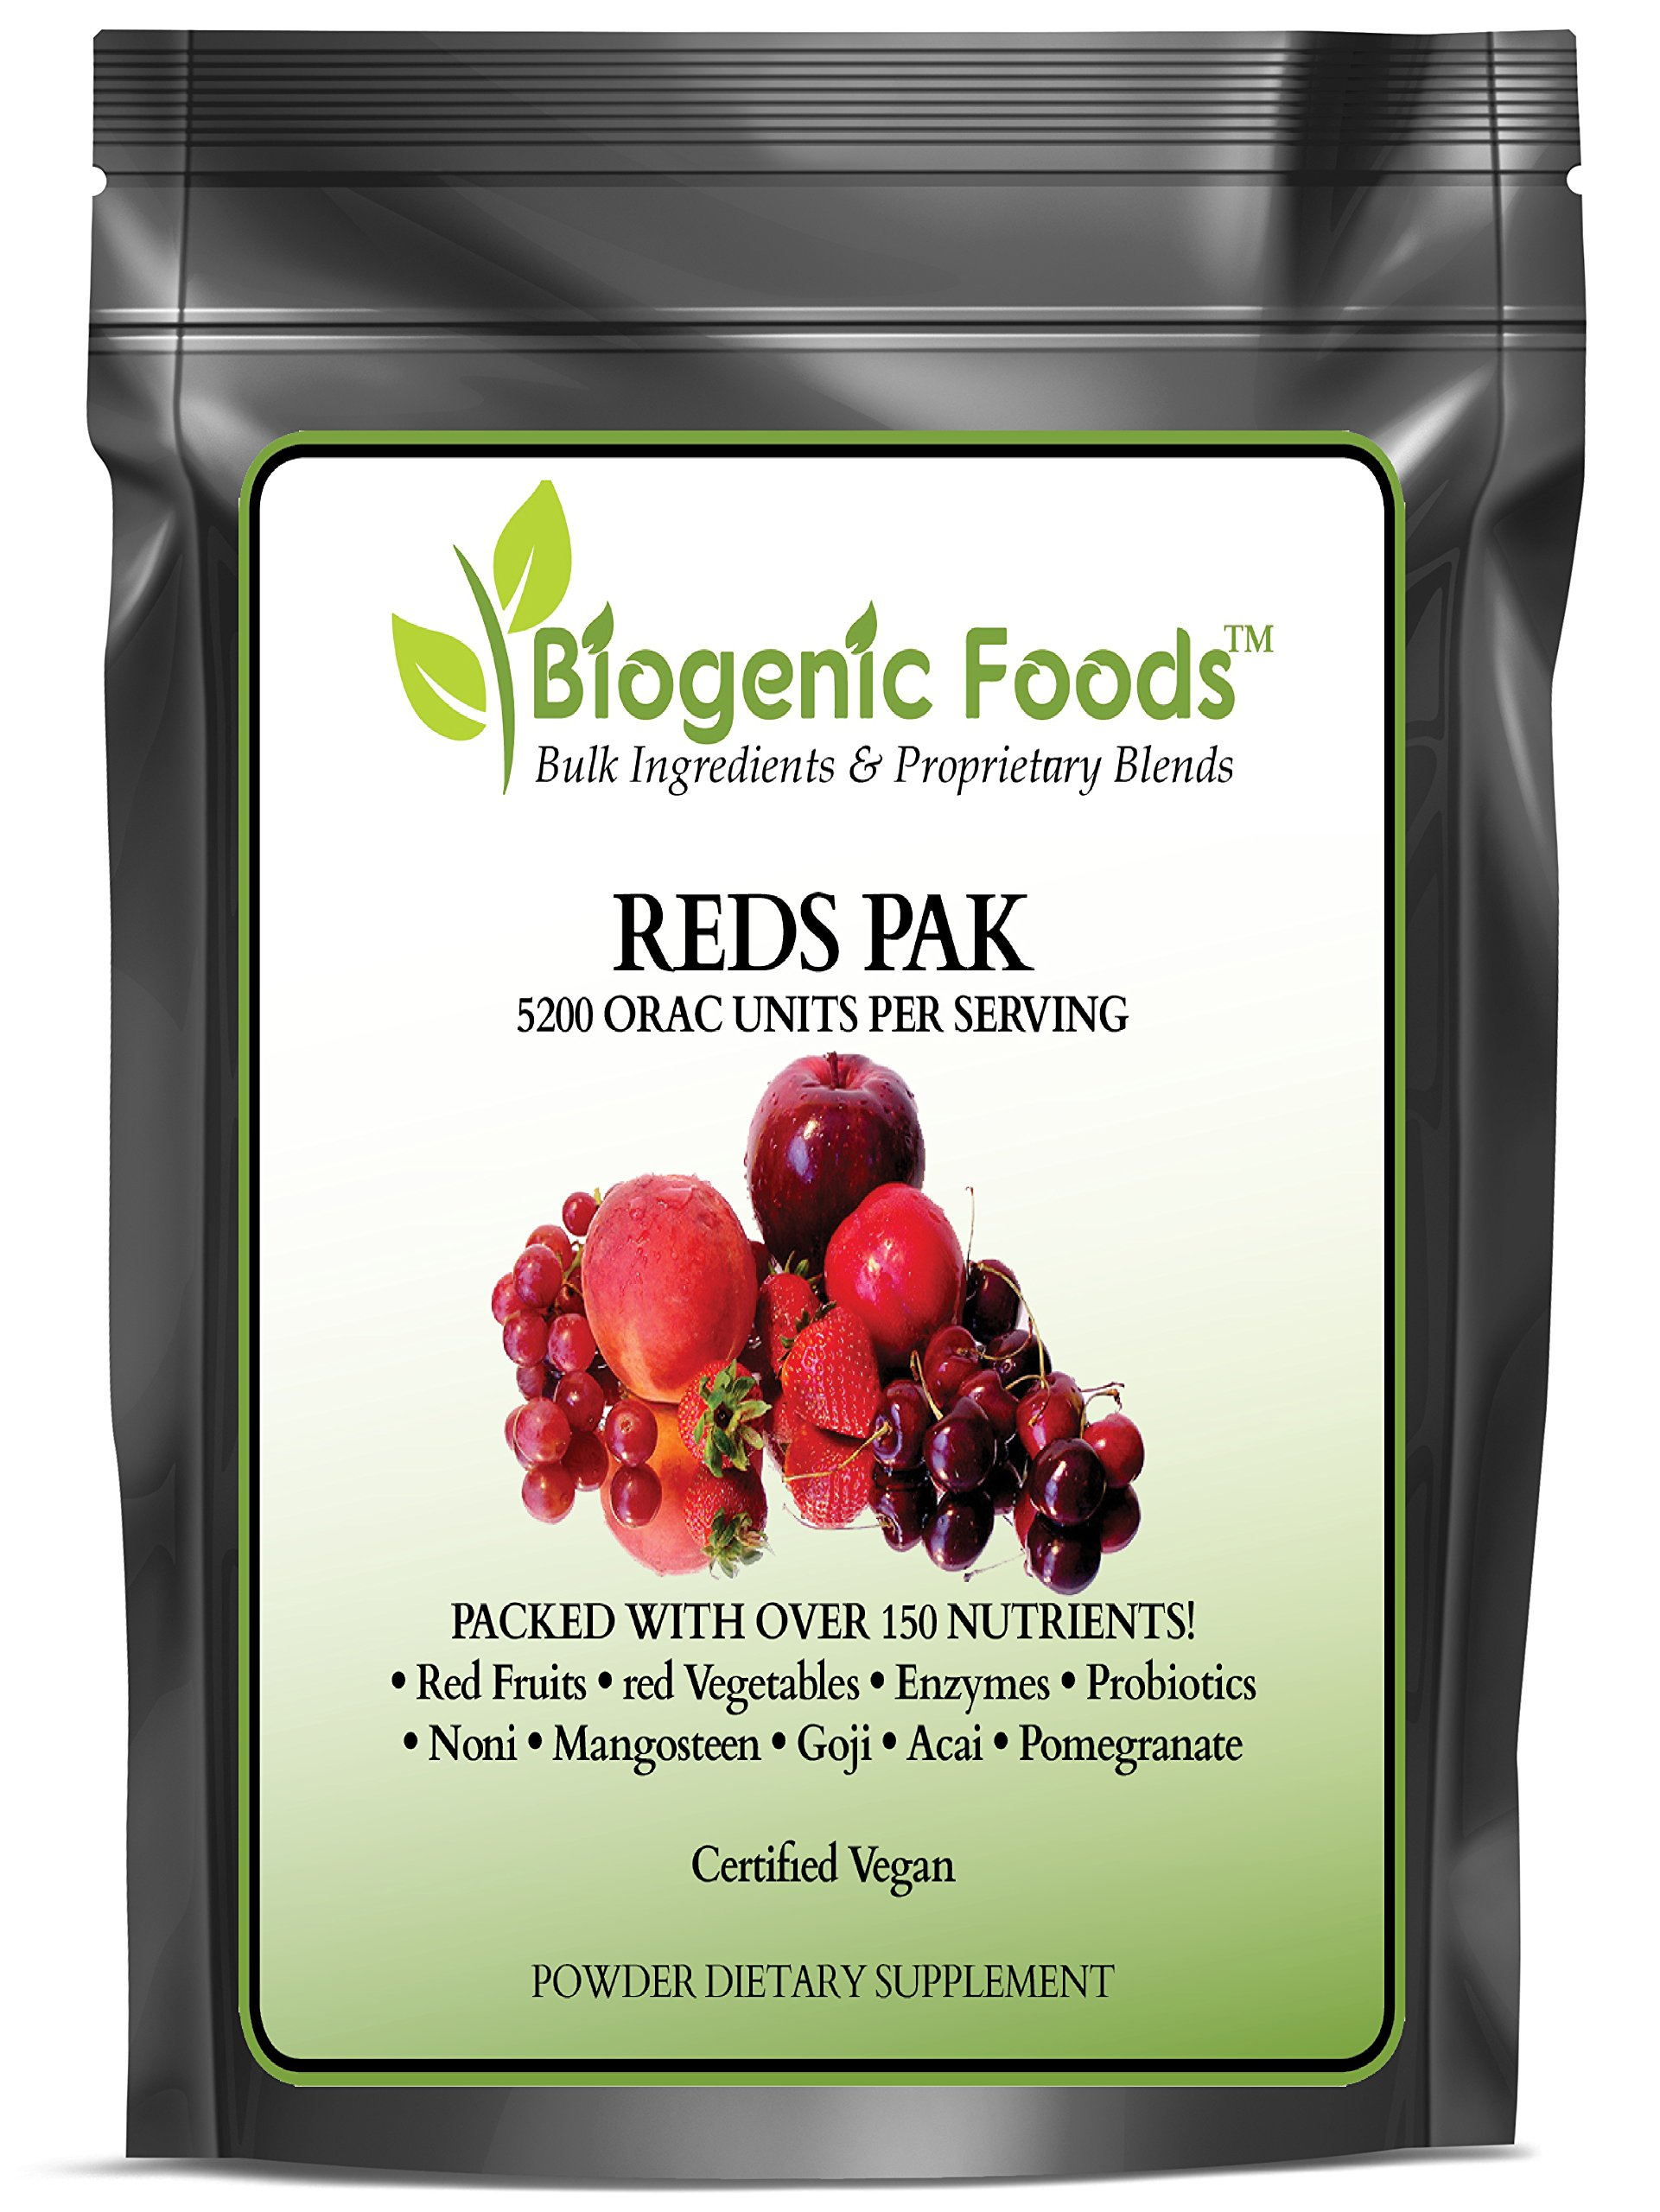 Reds Pak - Natural Super Fruit & Vegetable Blend w/Antioxidants & Phytonutrients ING: Organic Powder, 1 kg